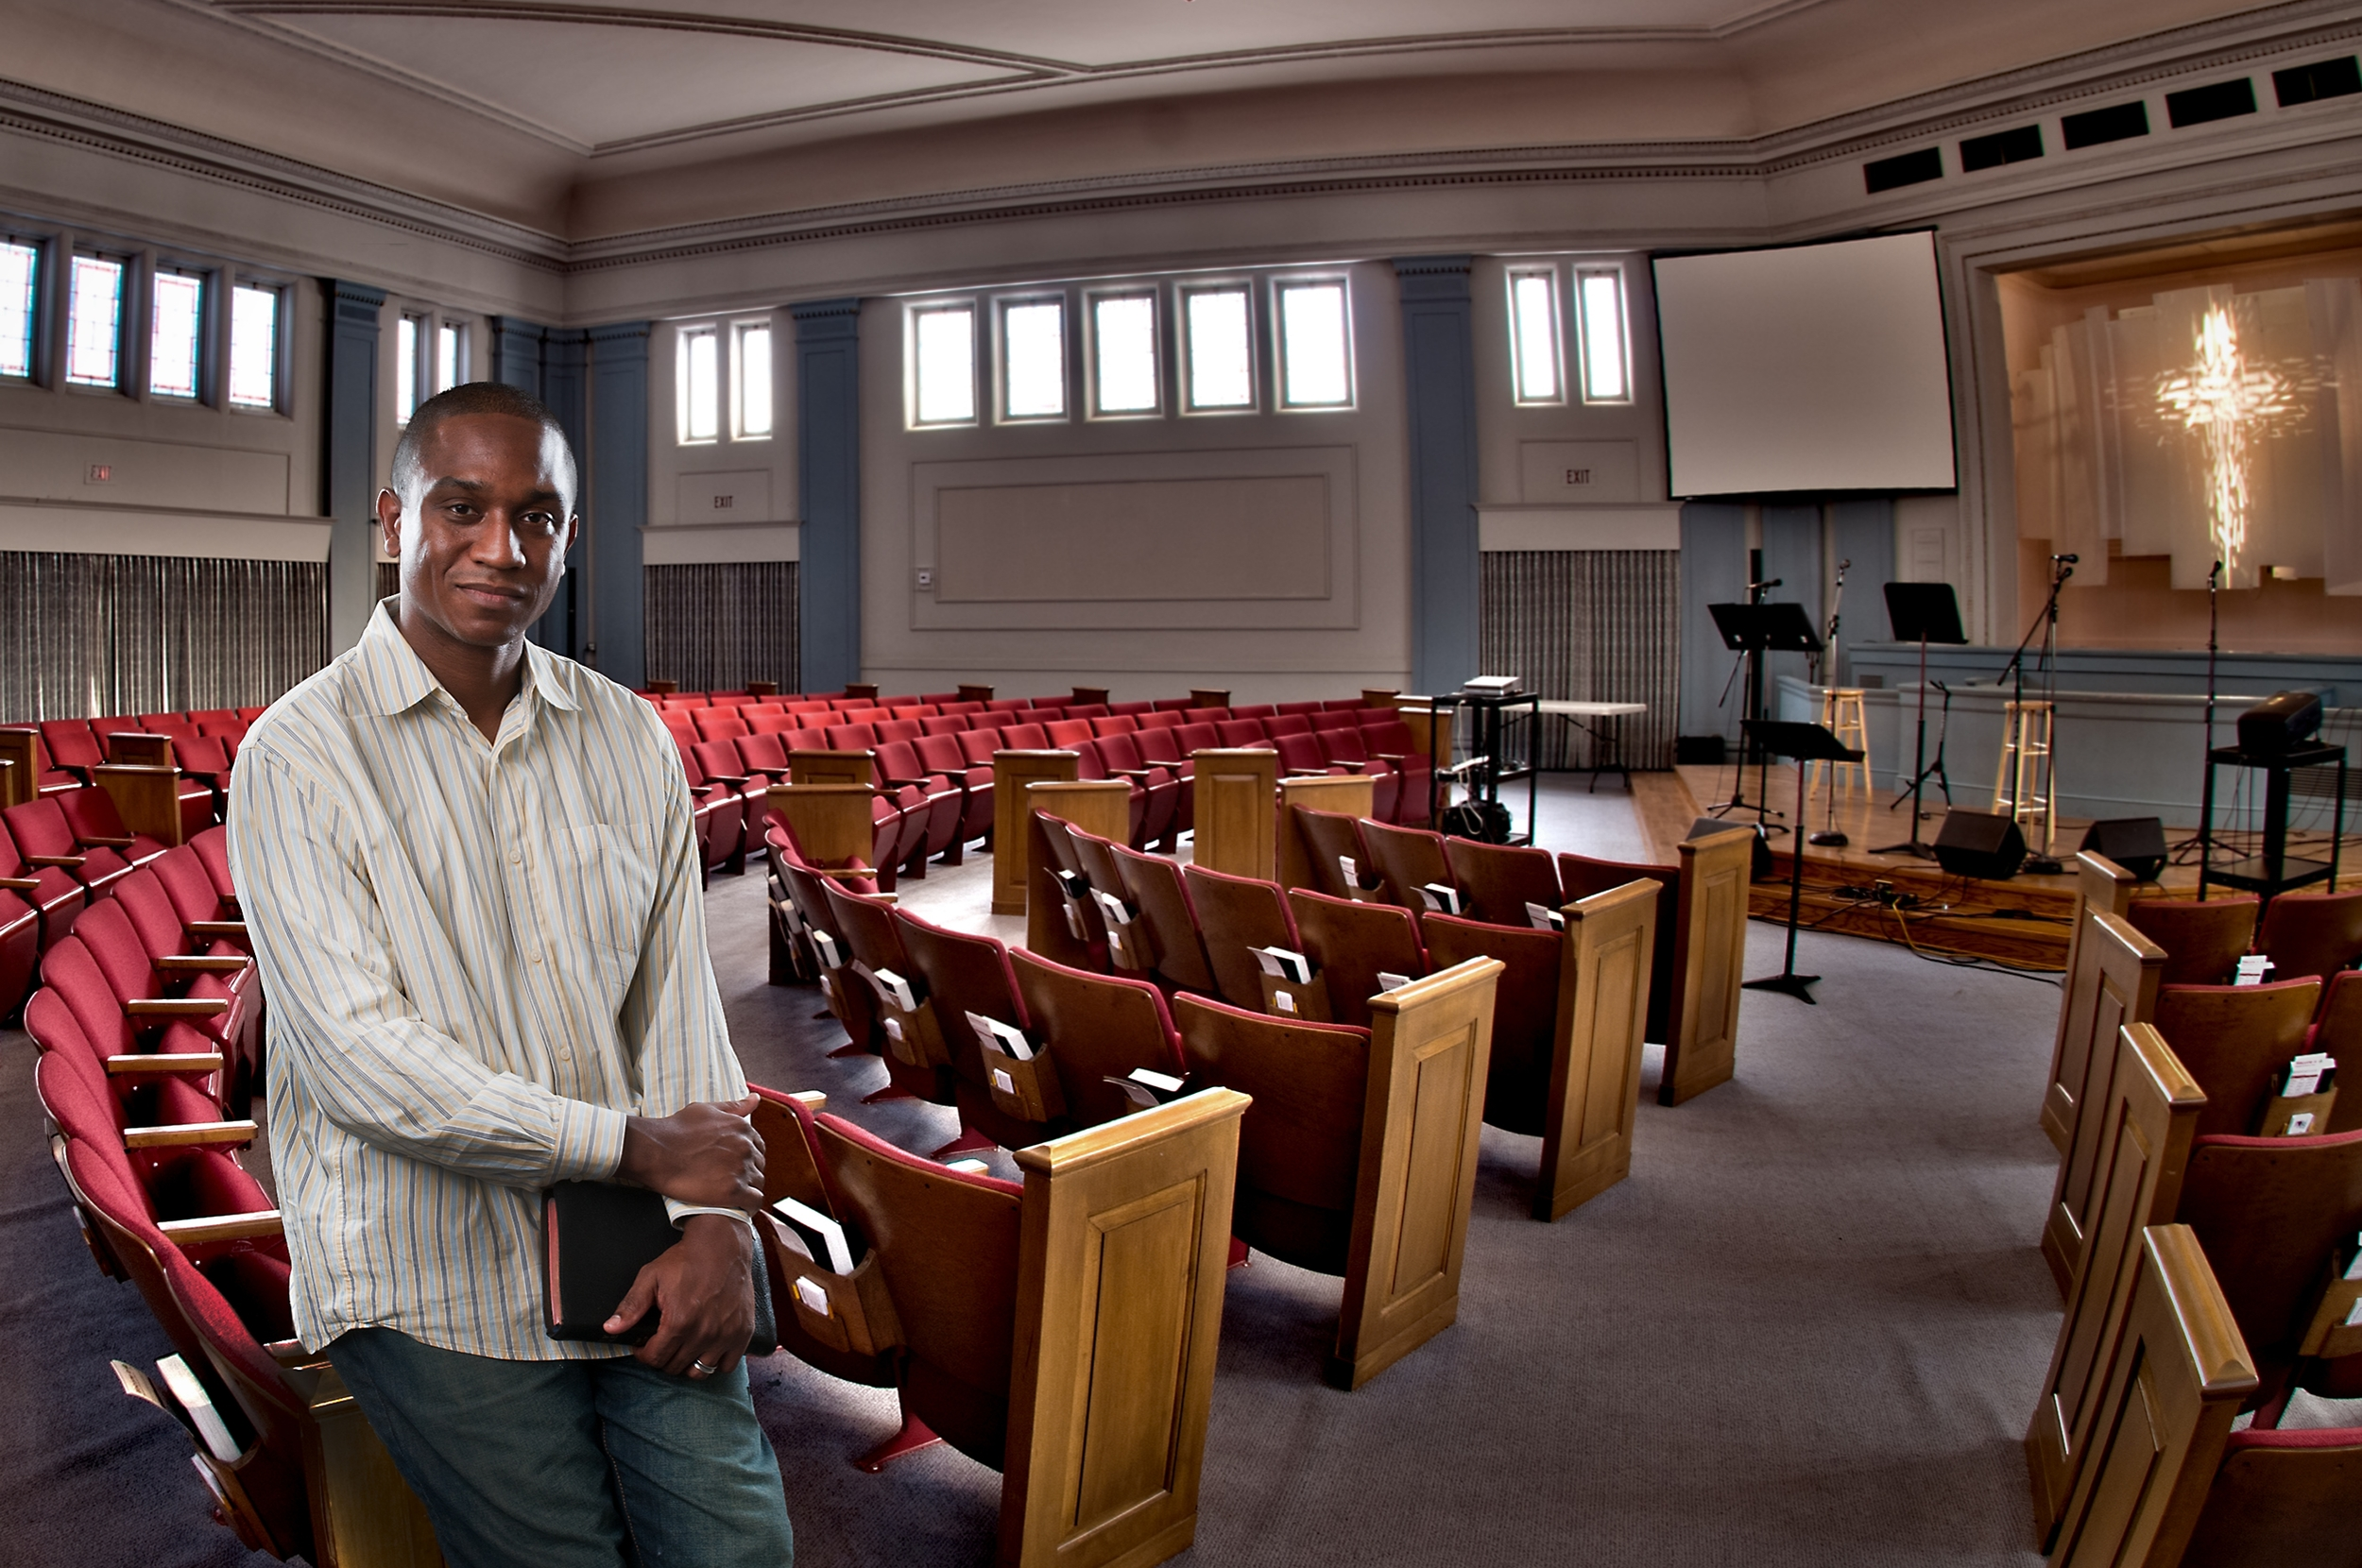 Vermon Pierre, Lead Pastor, Roosevelt Community Church